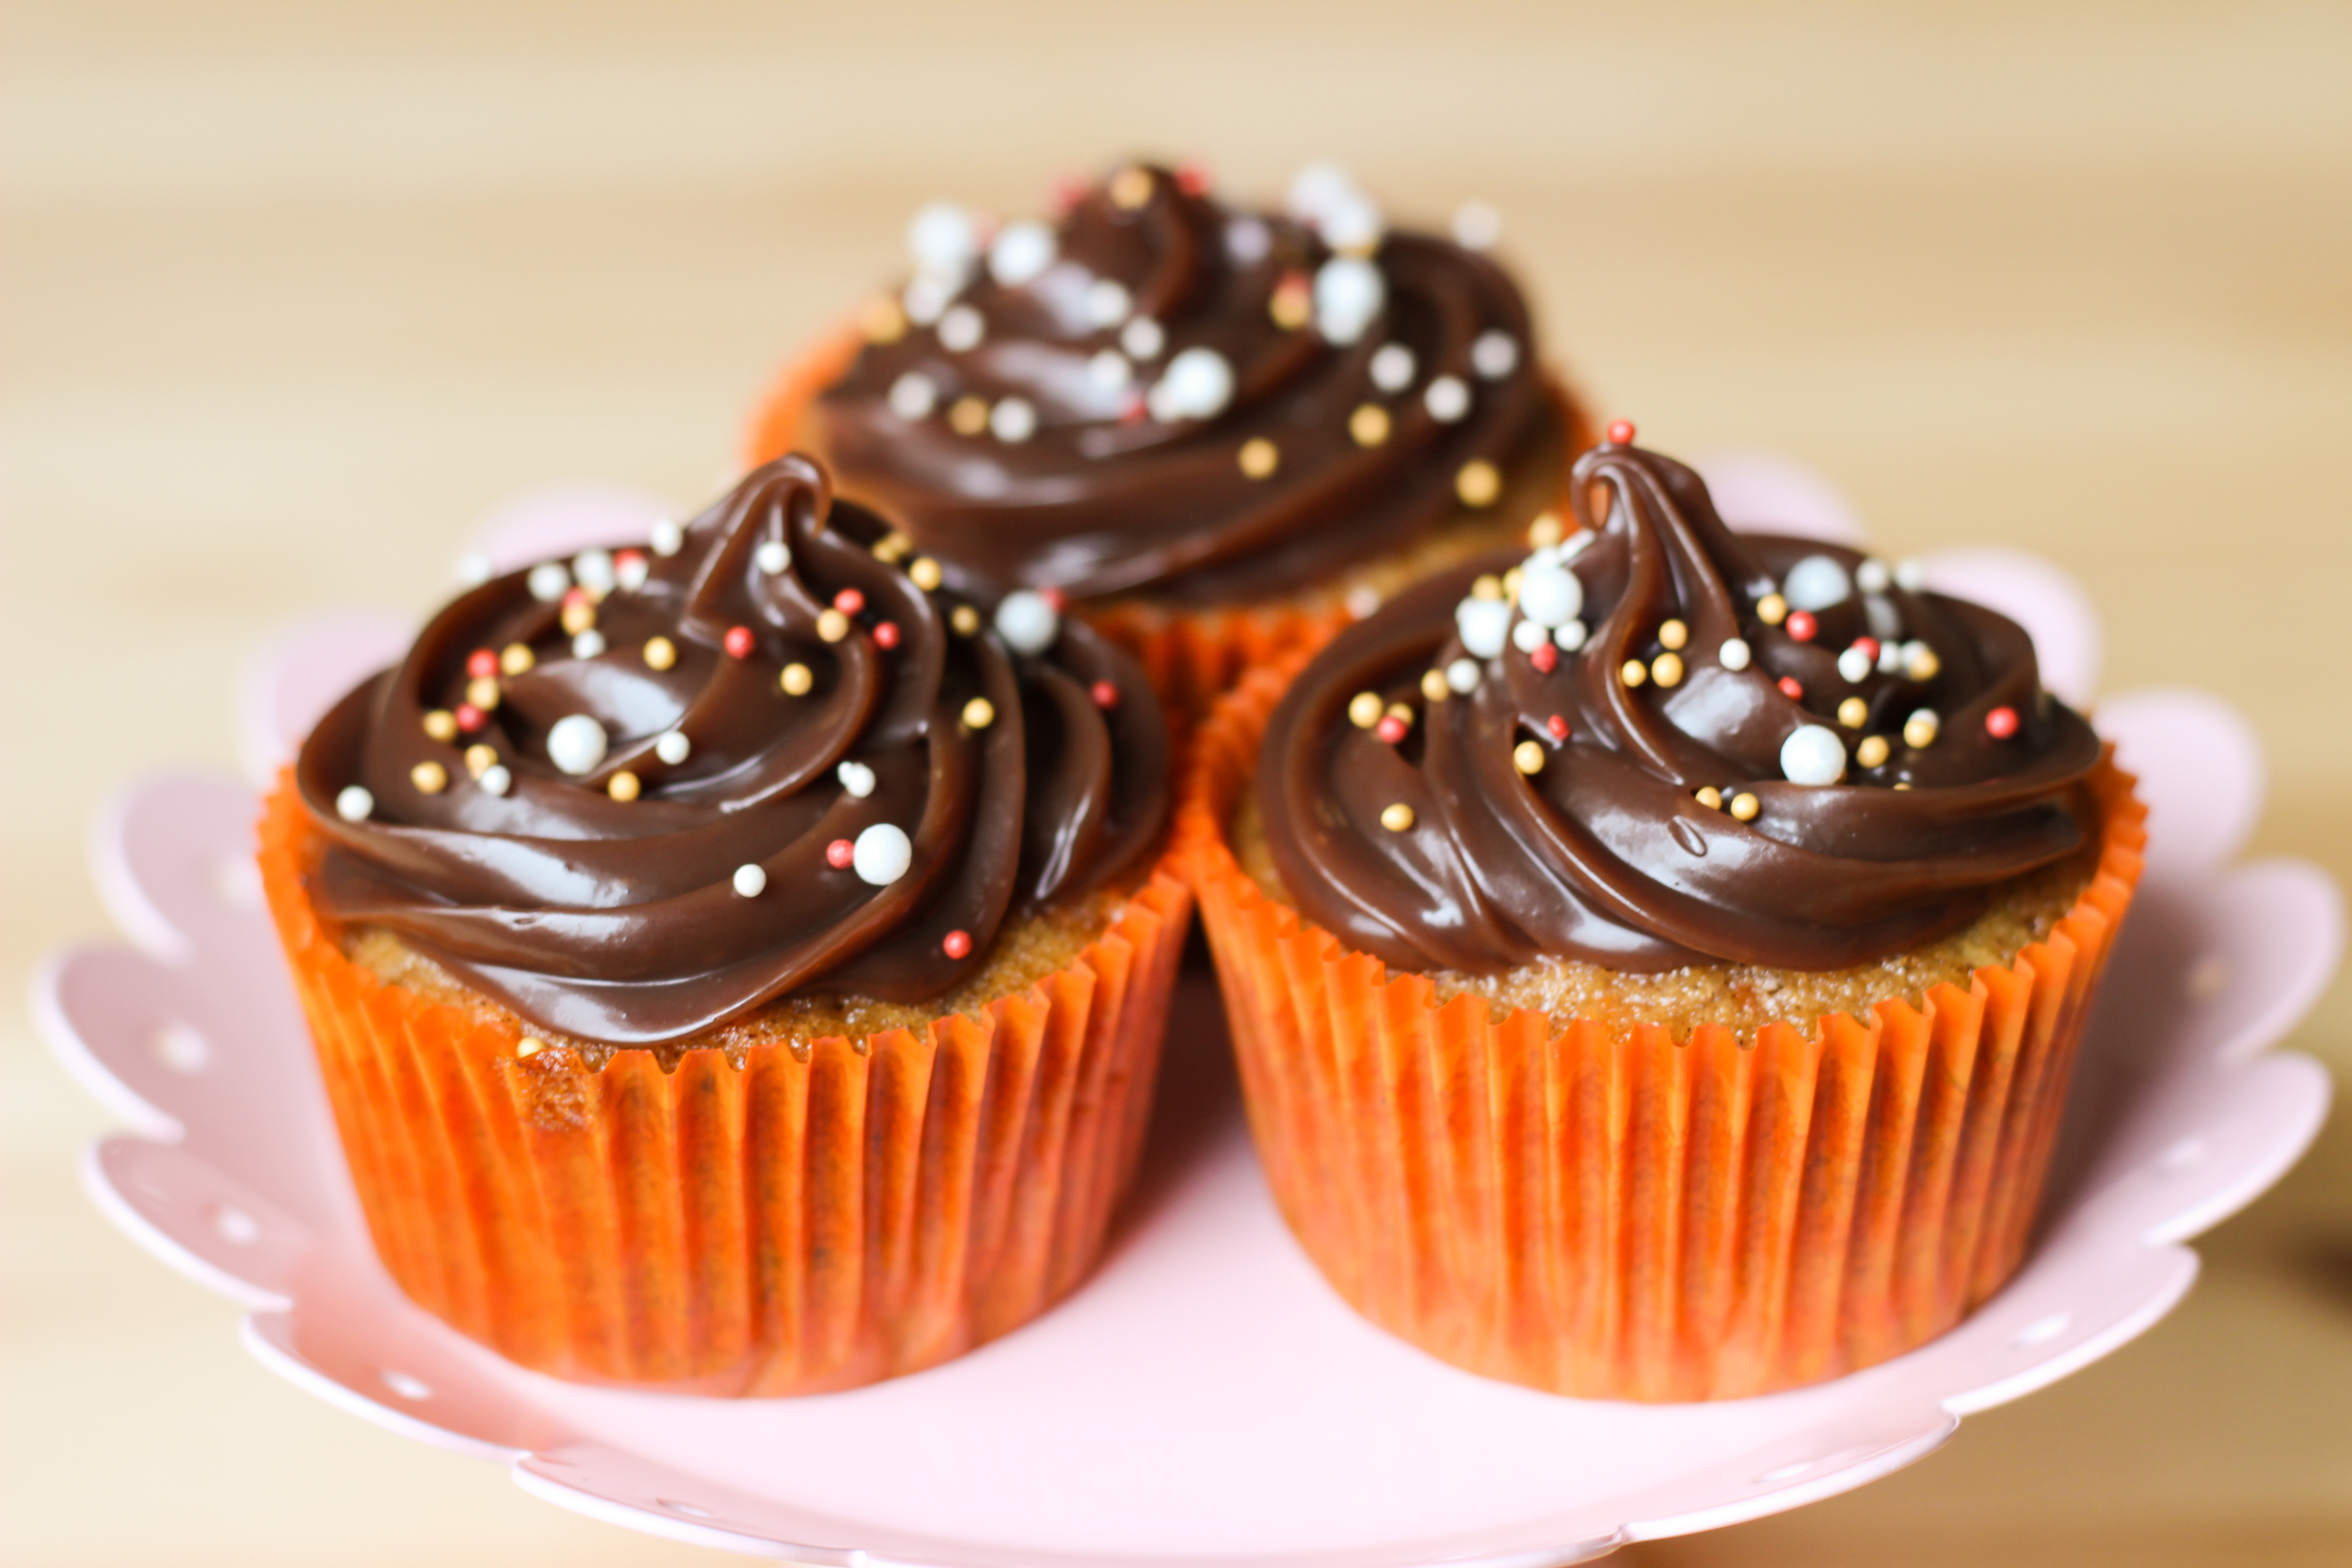 Can I Use A Carrot Cake Recipe For Cupcakes